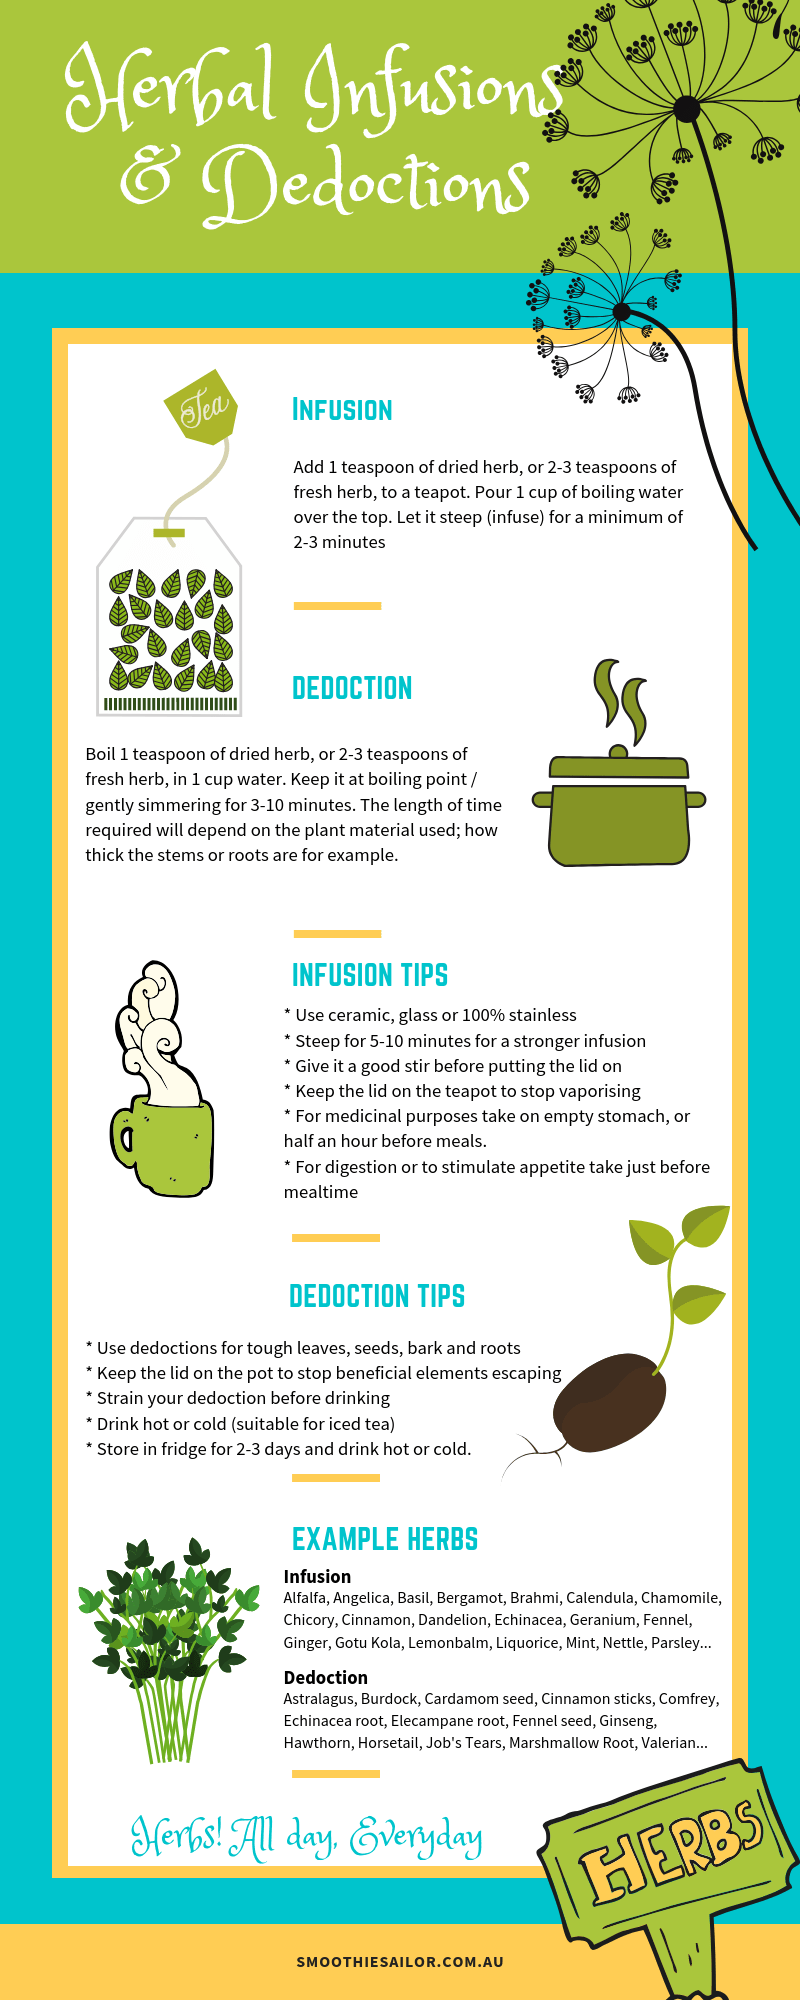 infogram-herbal-infusion-dedoctions-how-to-herbs